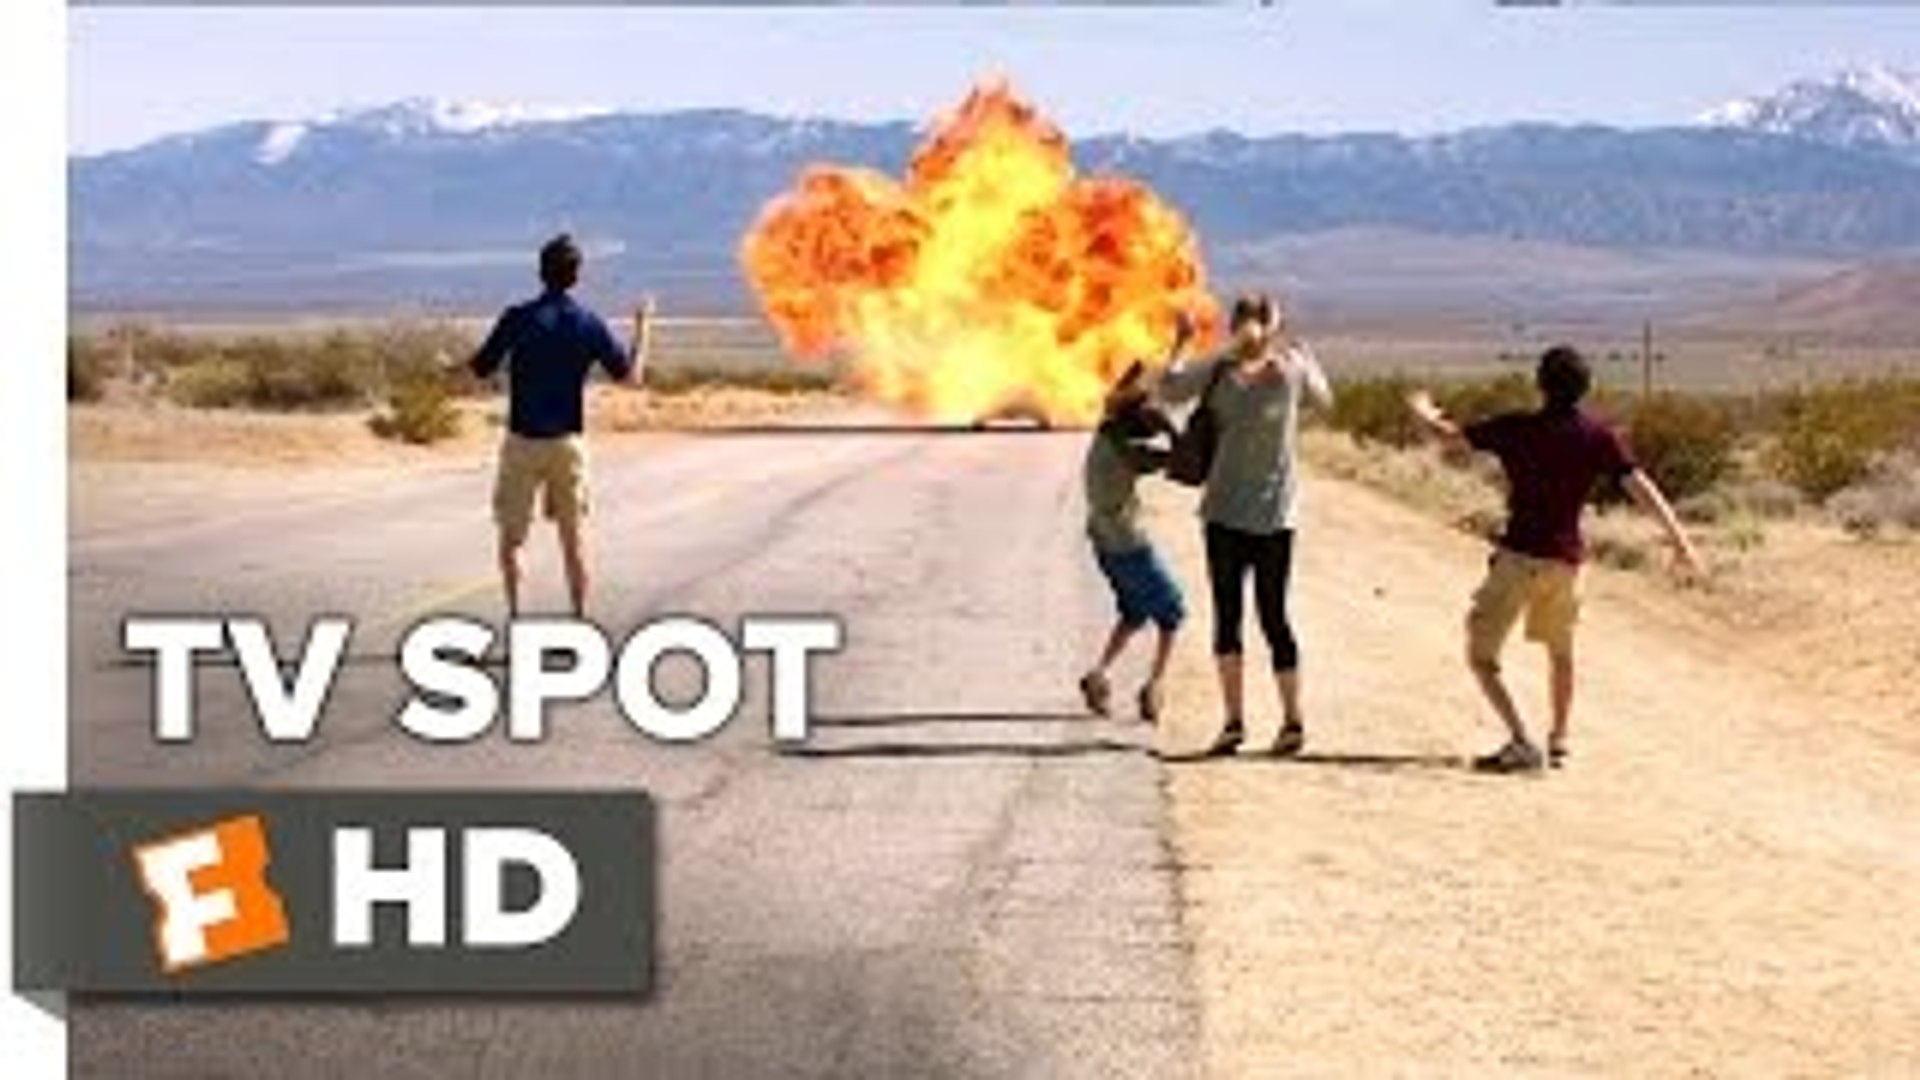 Vacation TV SPOT - Now Playing (2015) - Ed Helms, Christina Applegate Comedy Mov_HD